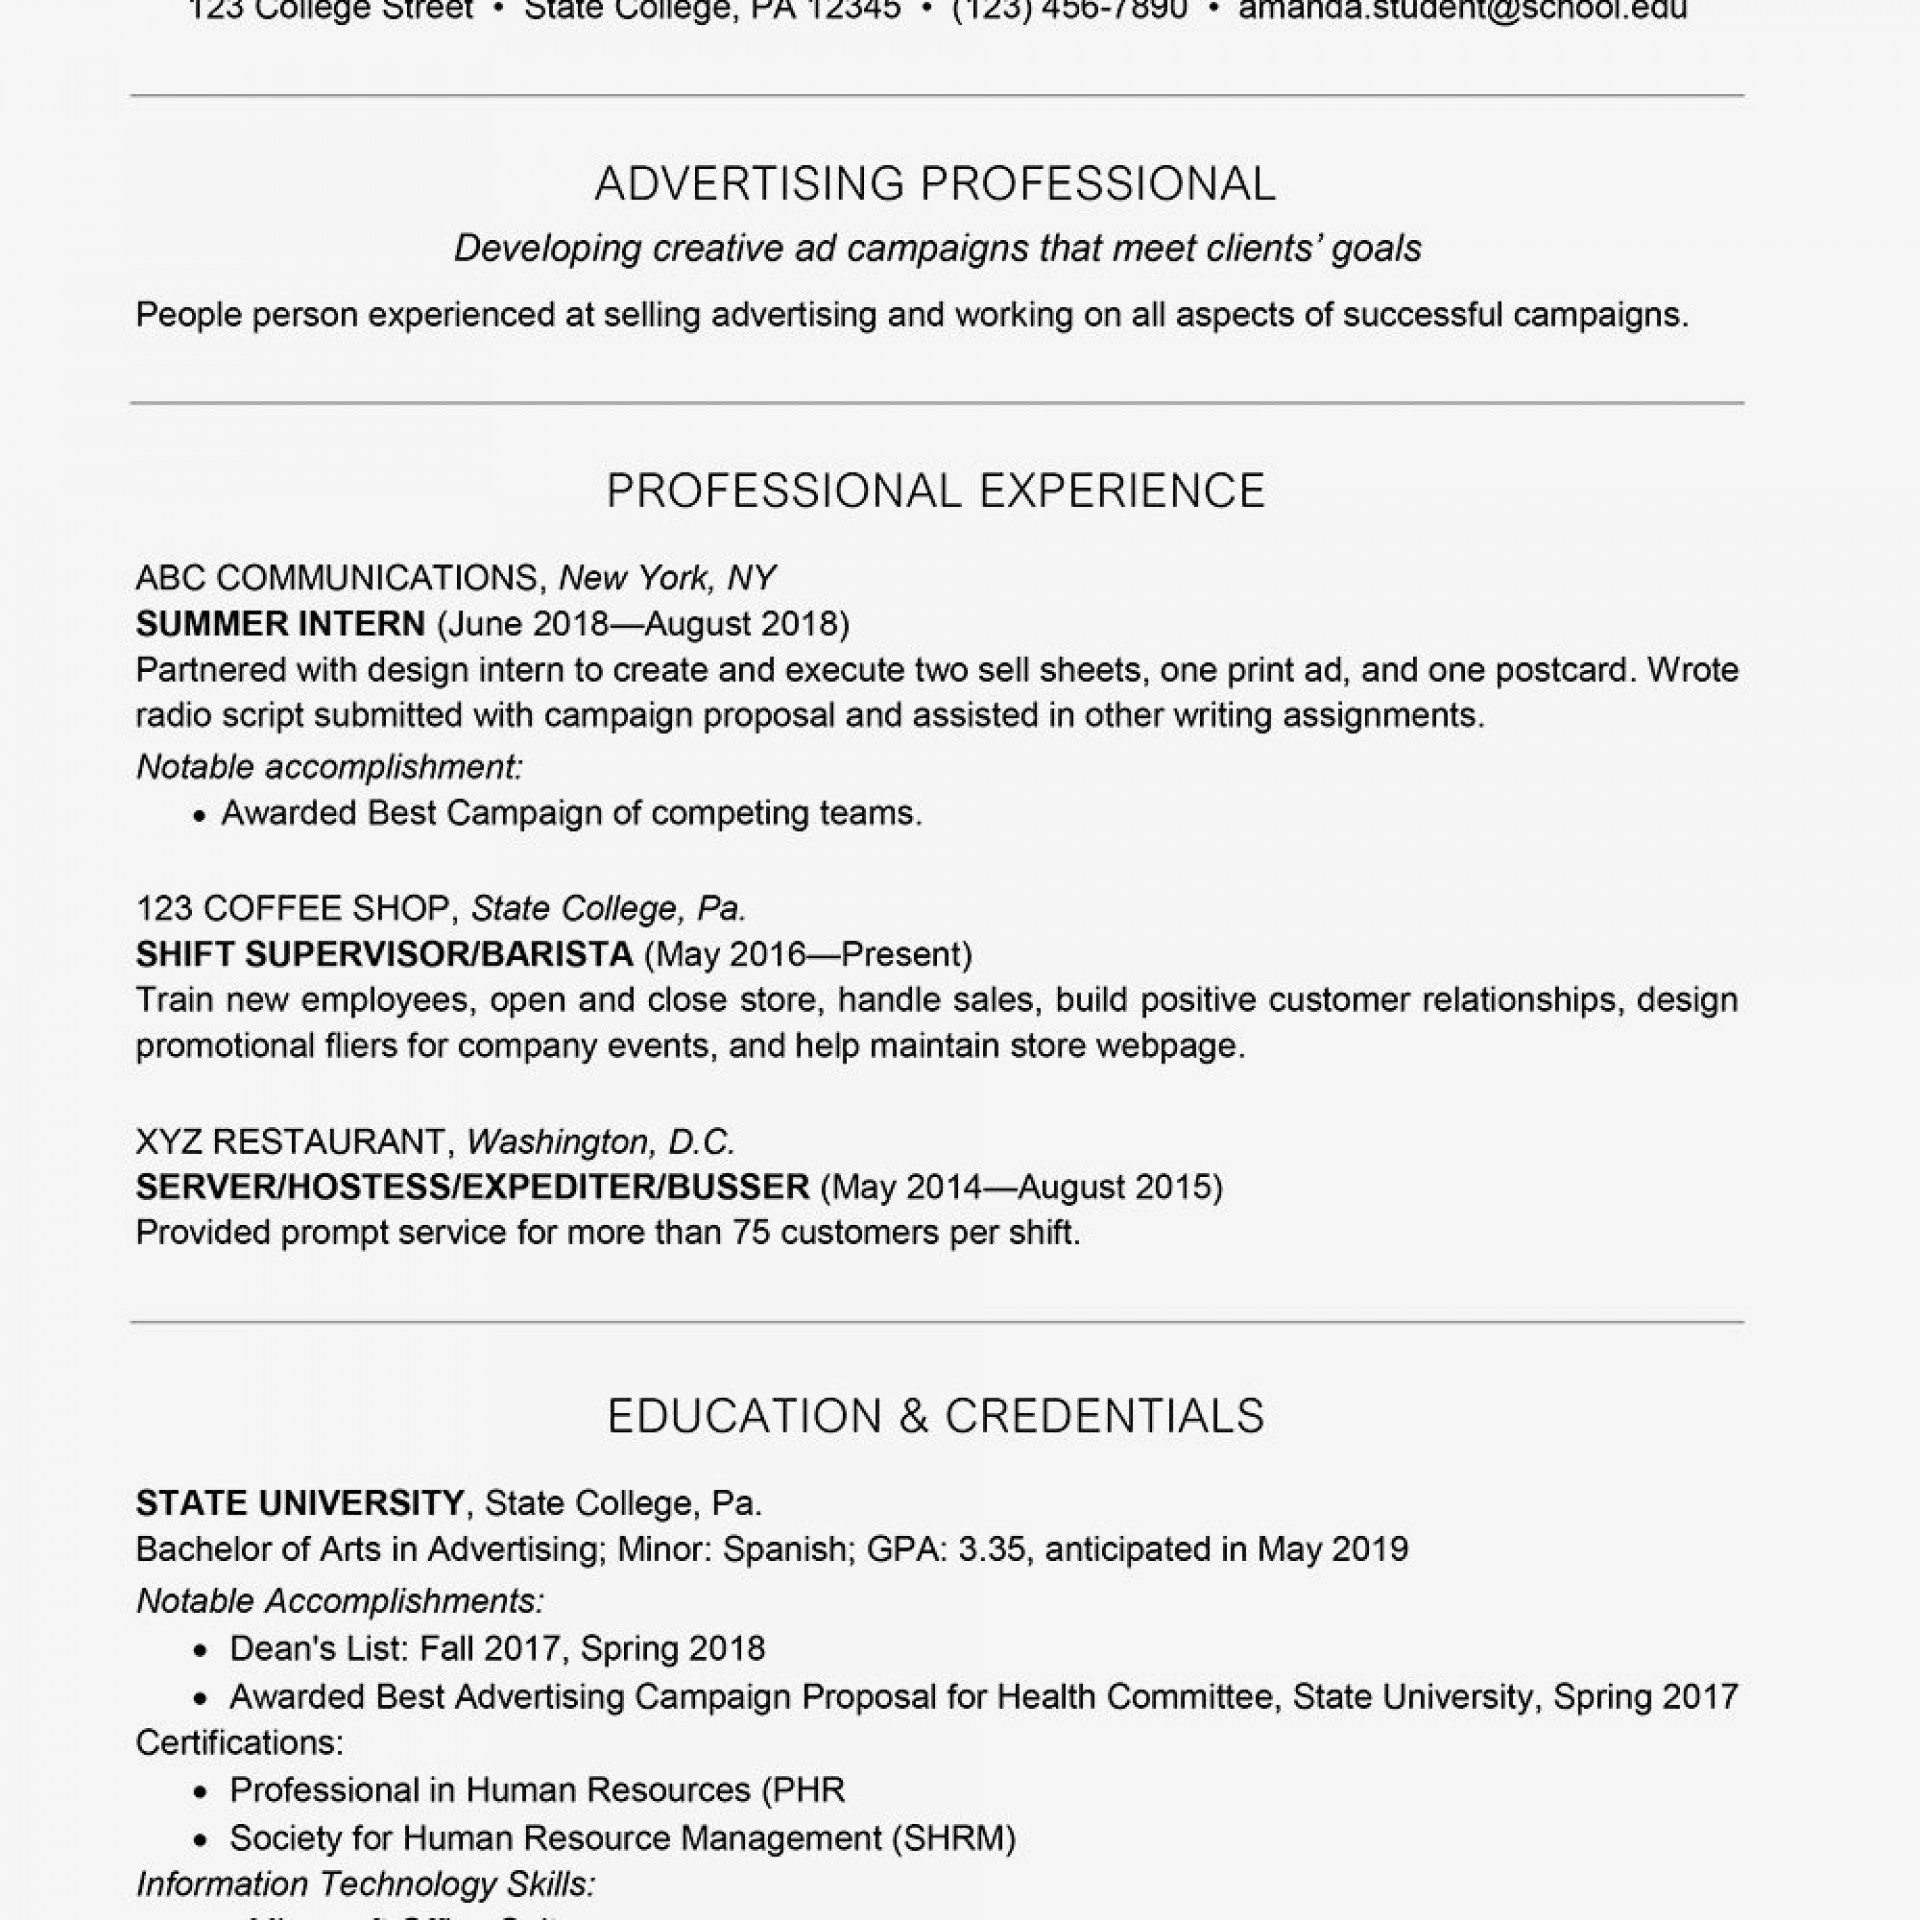 003 Beautiful Current College Student Resume Template High Resolution 1920